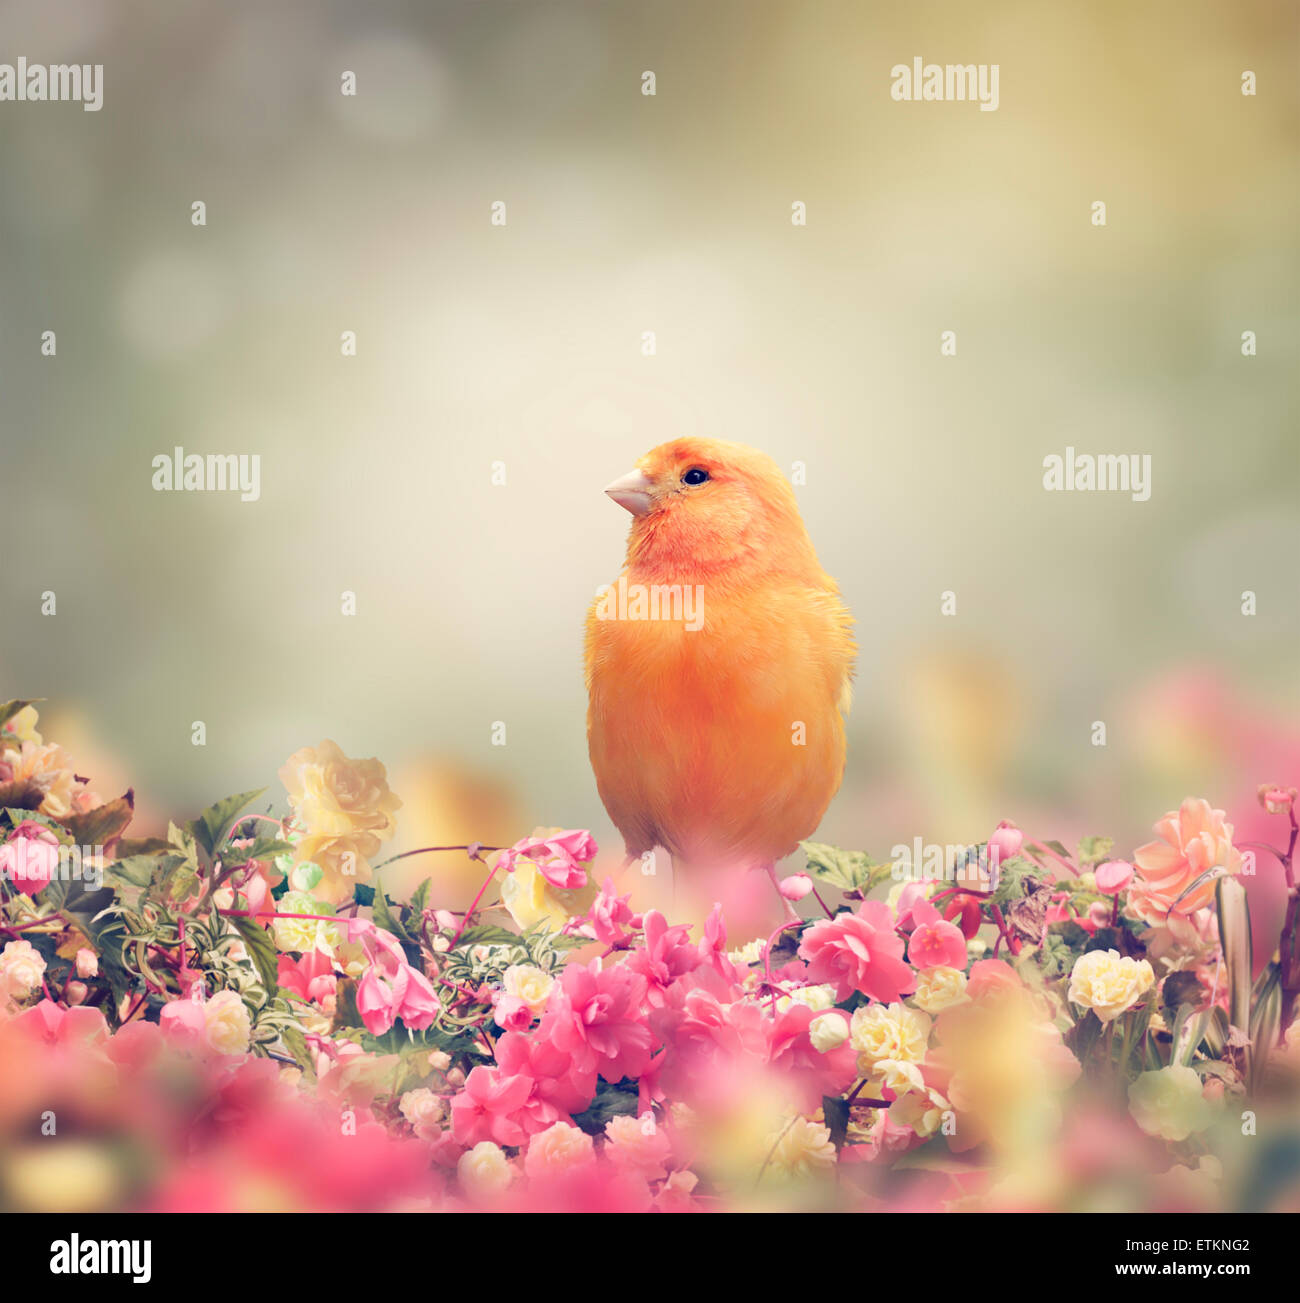 Yellow Bird Perches In Flower Garden - Stock Image